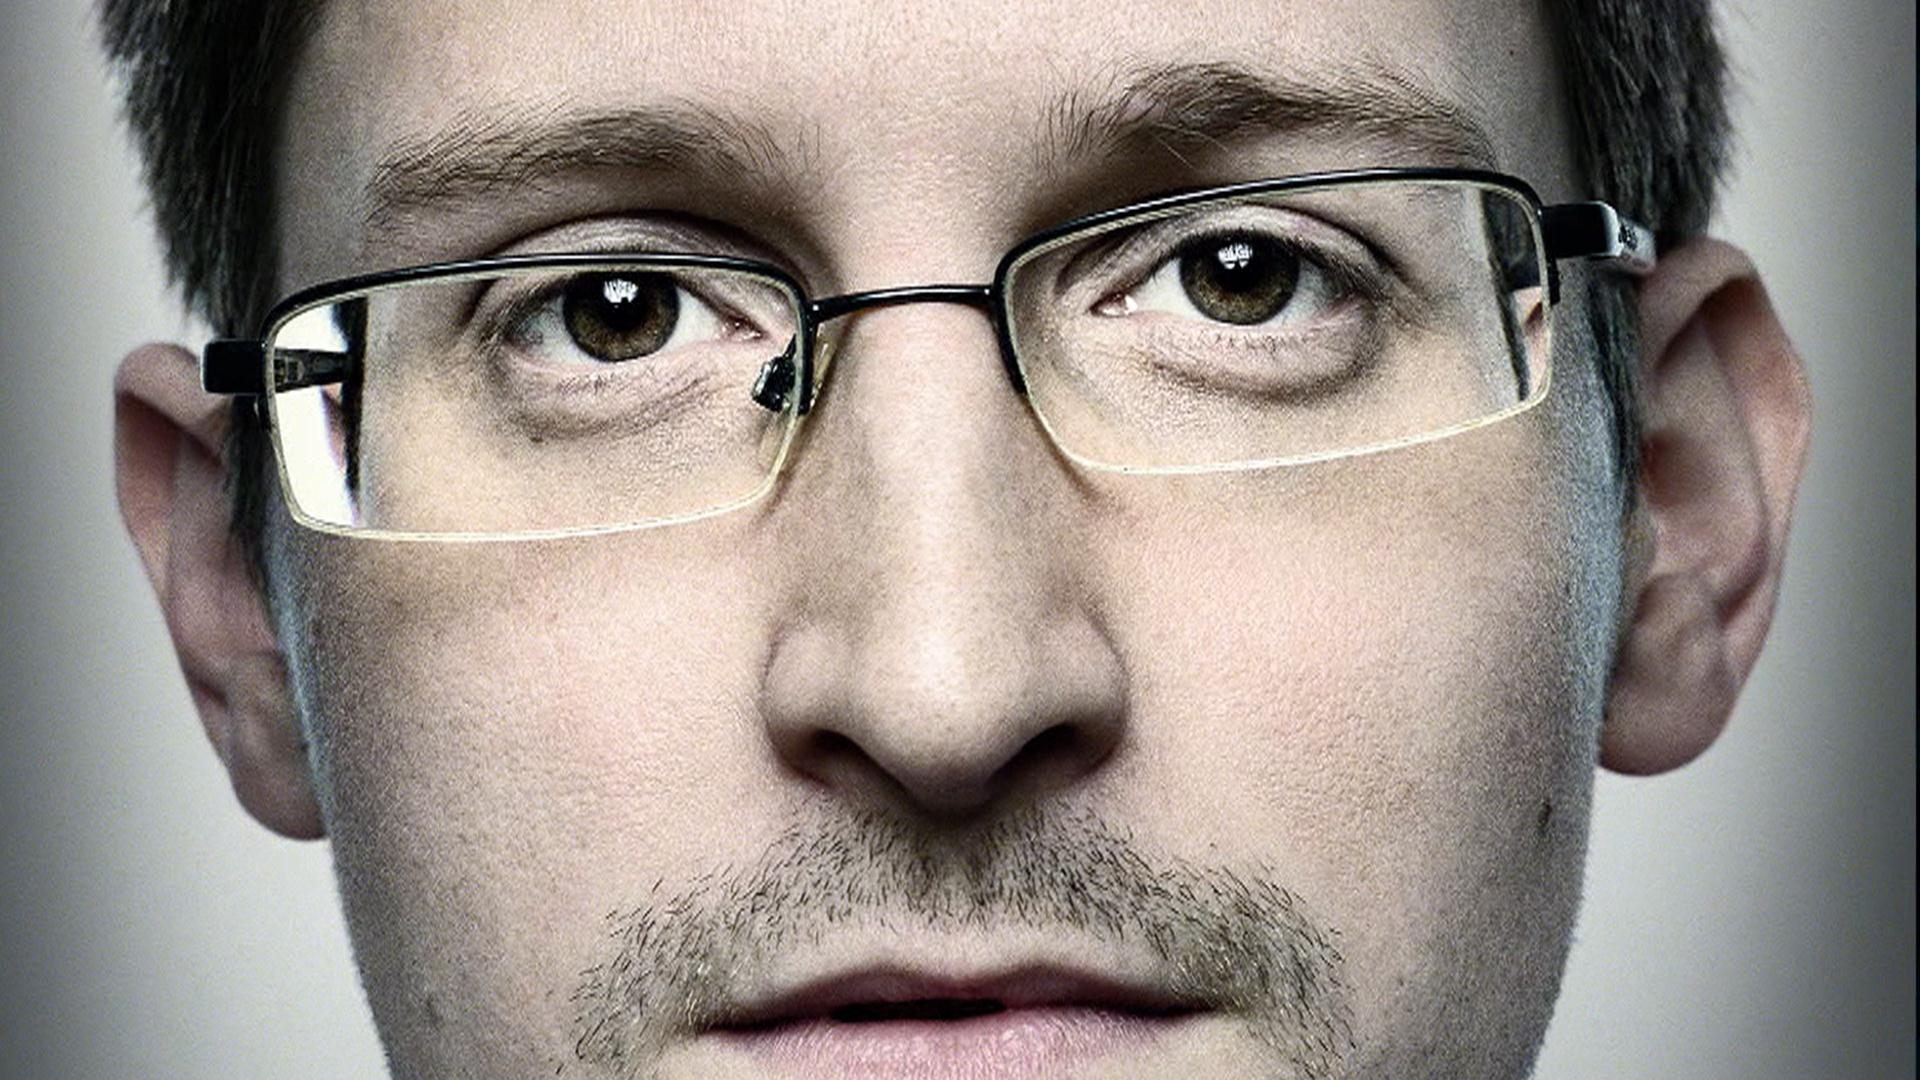 Edward Snowden - To no Cosmos